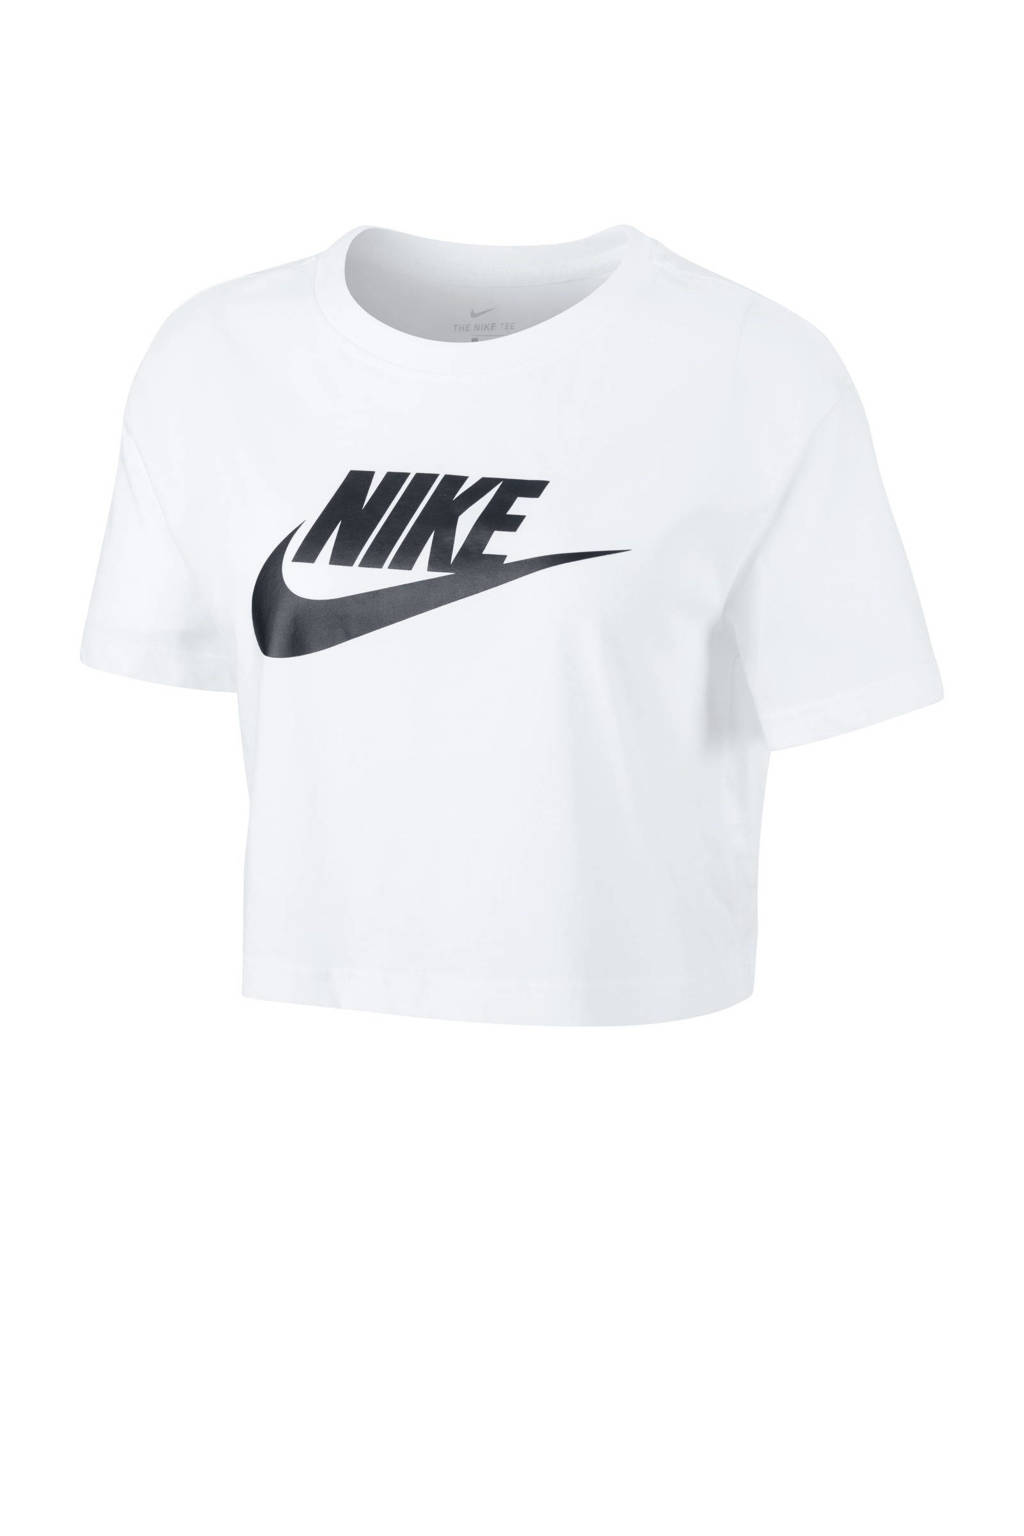 Nike cropped T-shirt wit, Wit